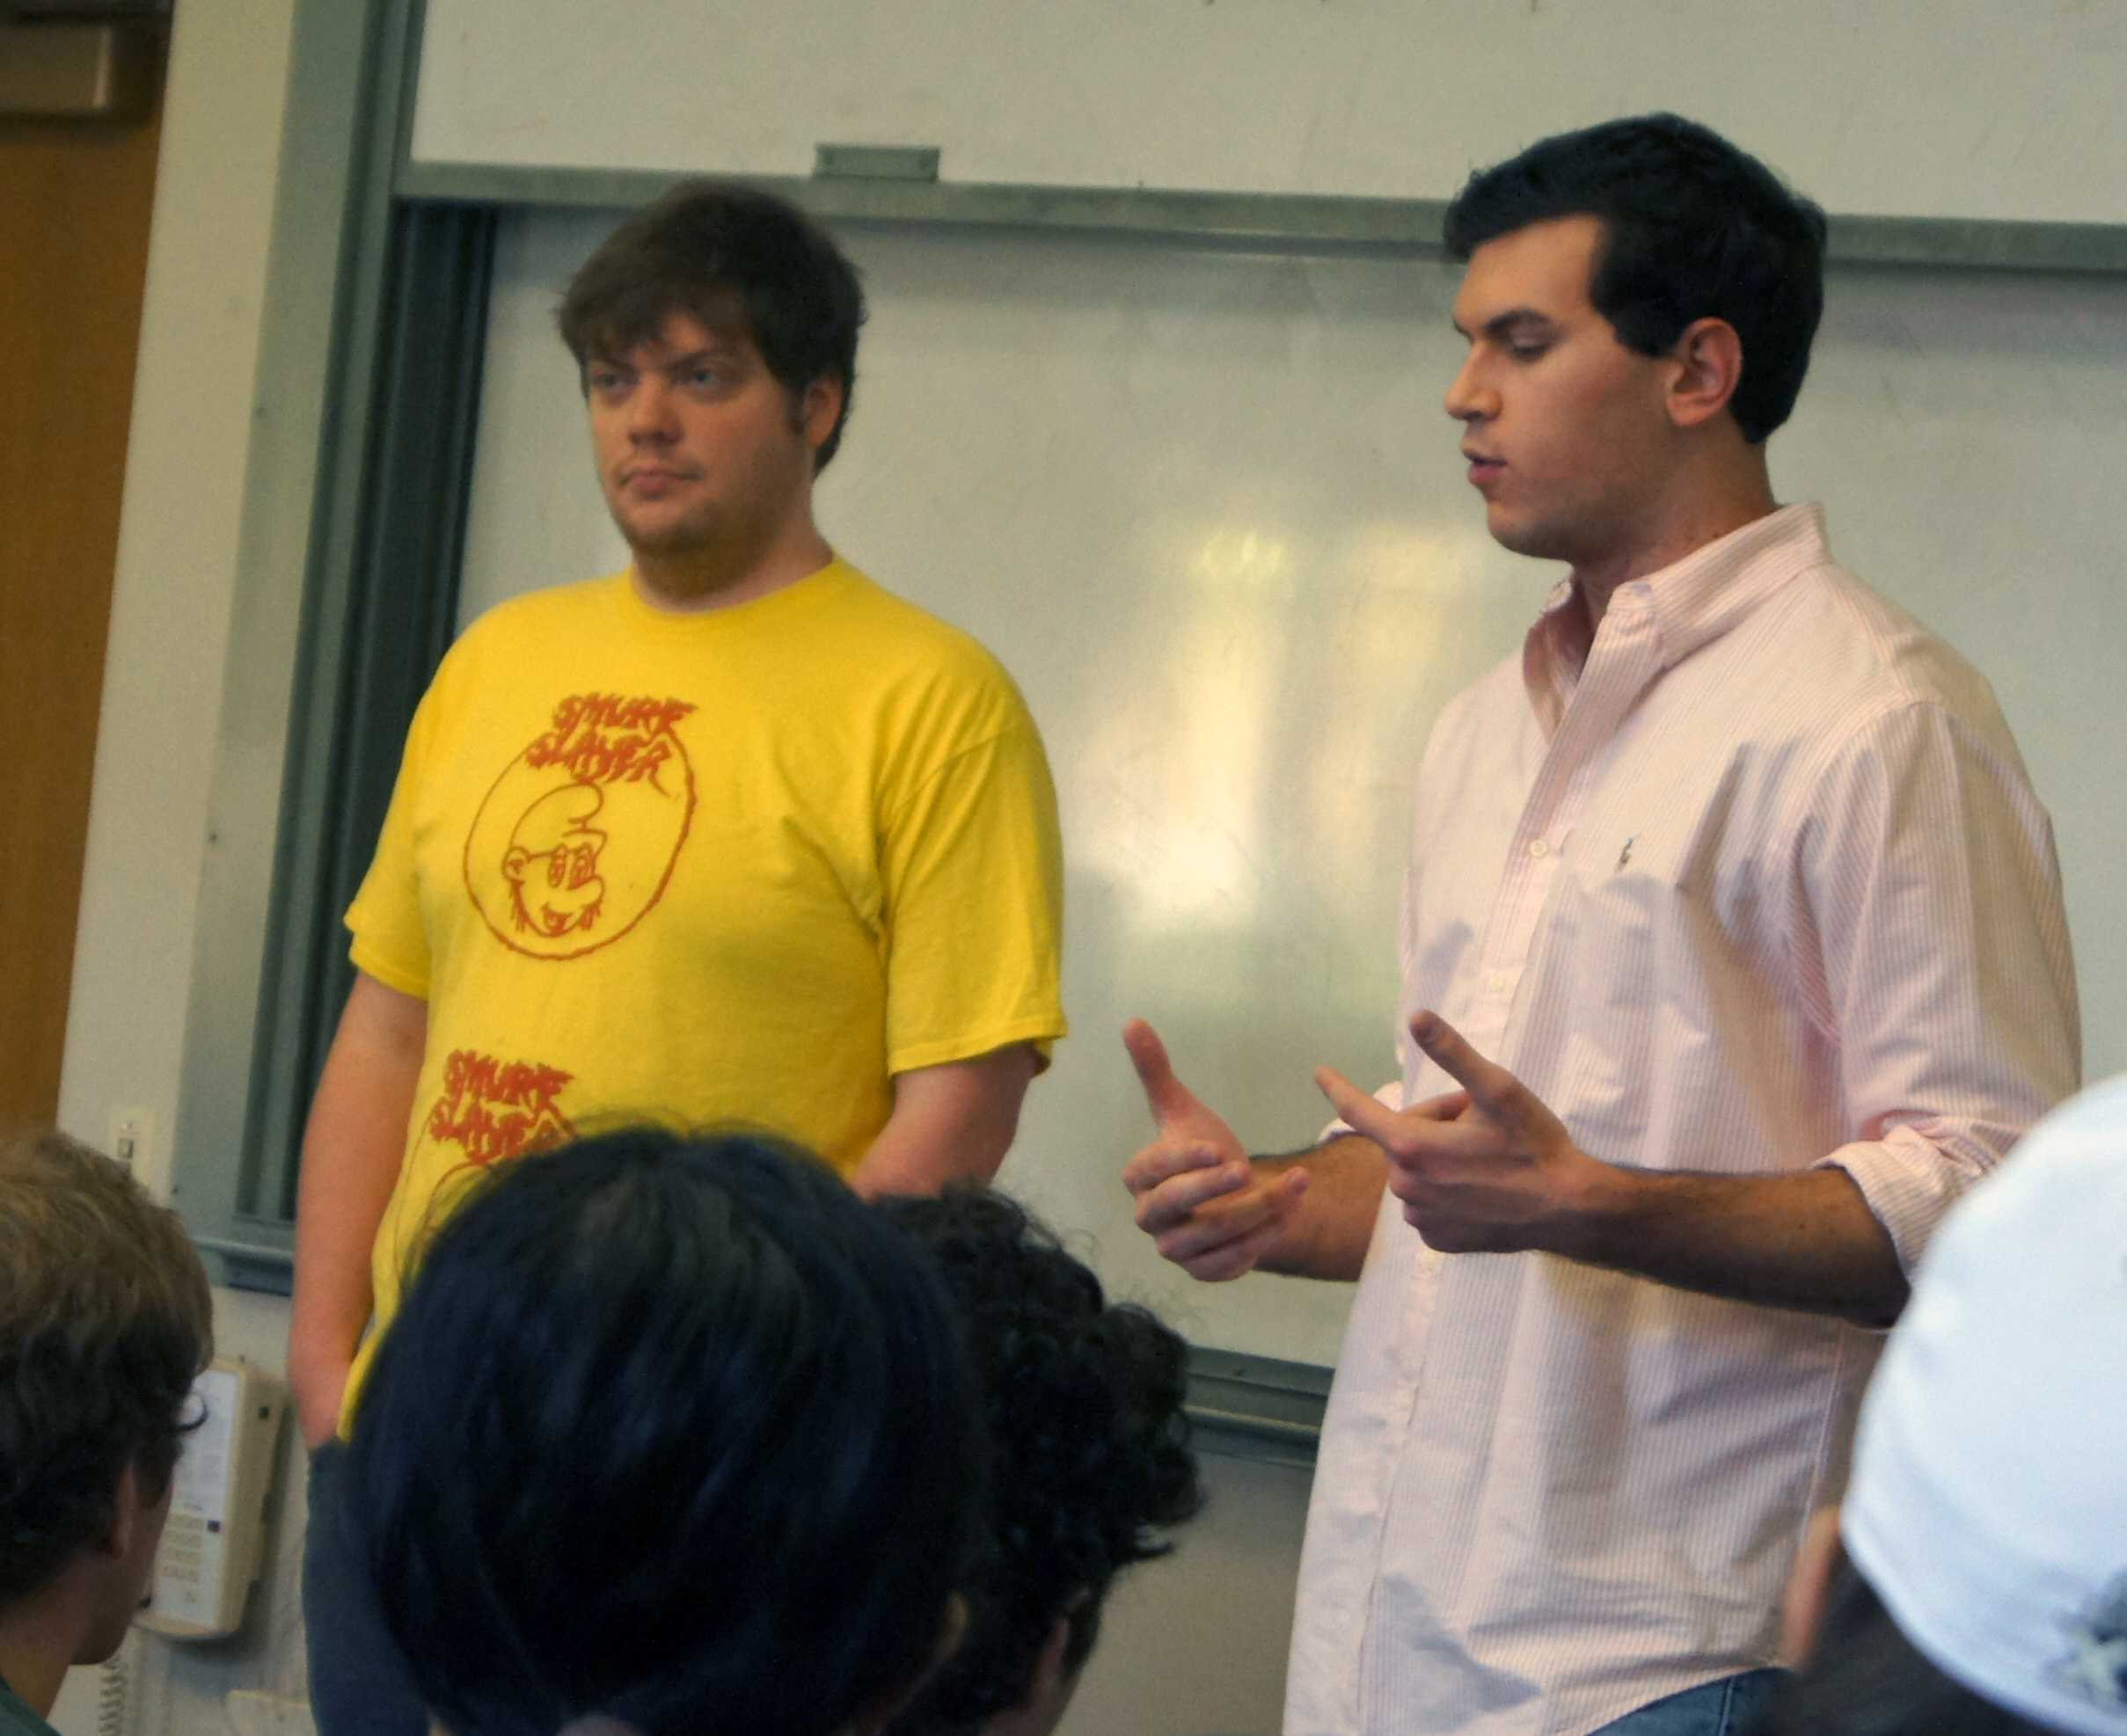 Weinberg senior Tim White (left) and Medill senior Matthew Hays (right) introduce improv group No Fun Mud Piranhas' goals for the coming year at a recent meeting. White and Hays are reviving a group that both David Schwimmer and Stephen Colbert participated in during their time at Northwestern.